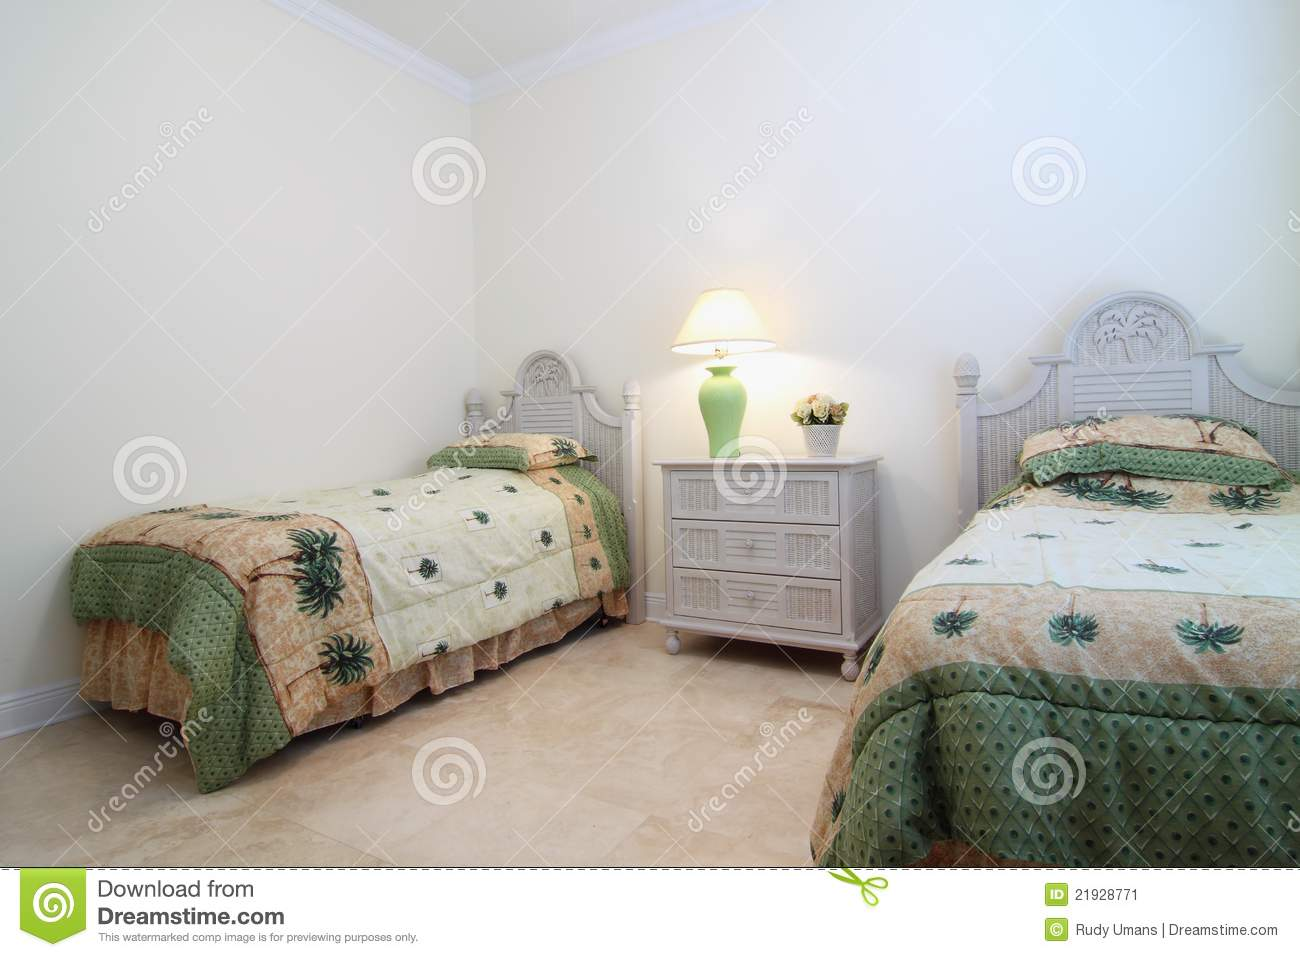 petite chambre coucher image stock image 21928771. Black Bedroom Furniture Sets. Home Design Ideas